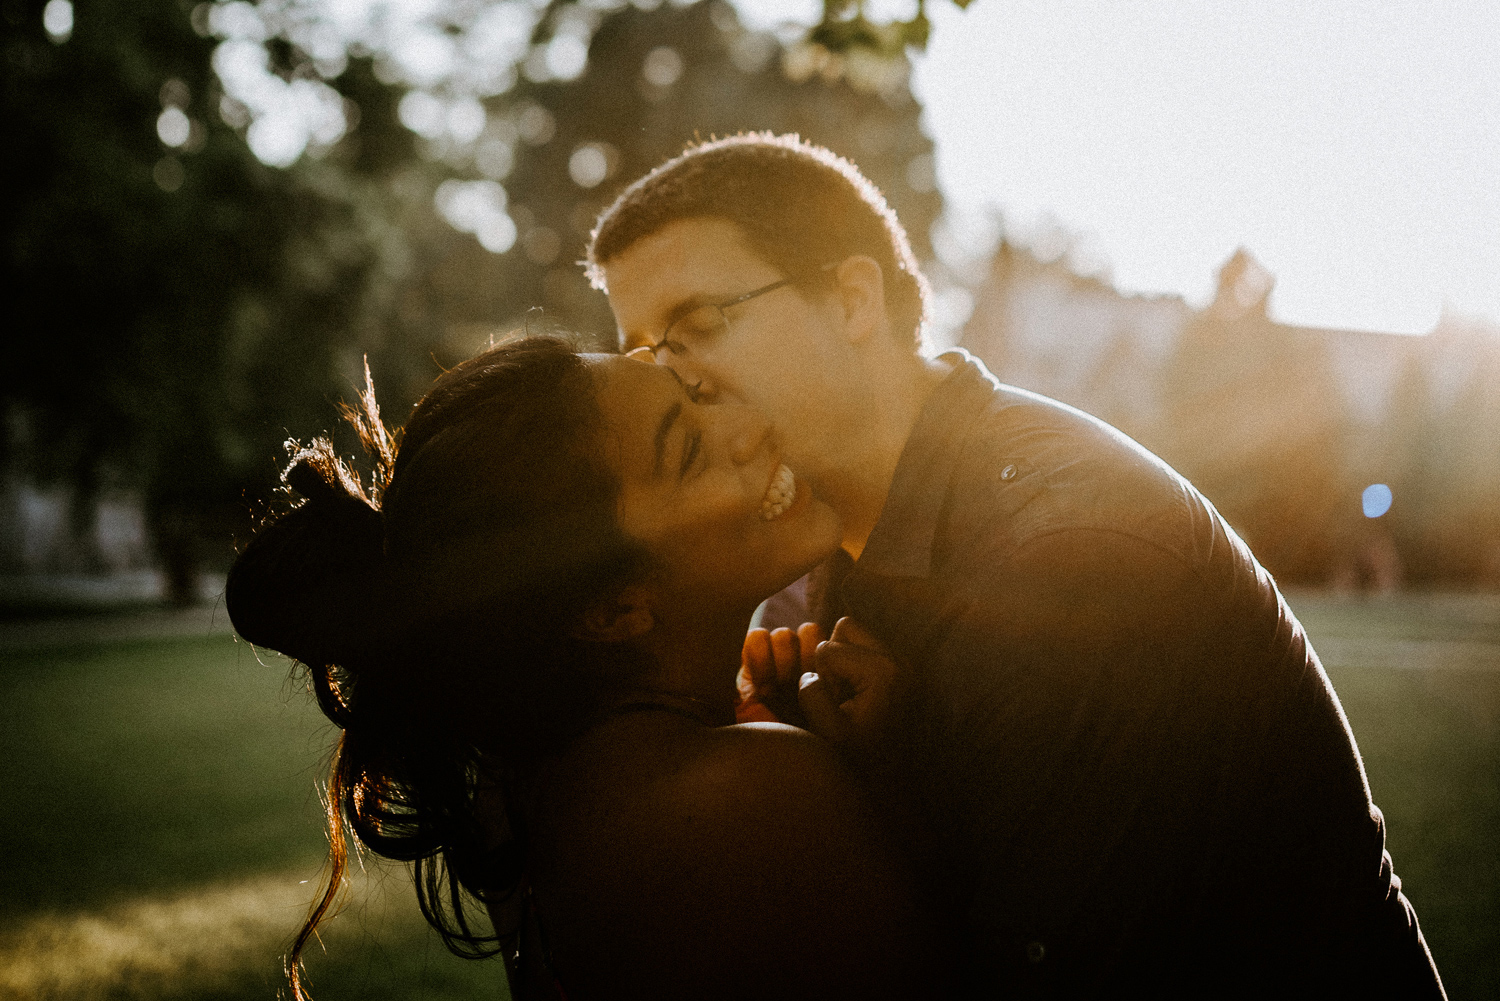 Princeton Engagement, Princeton Wedding, New Jersey Wedding Photographer, Princeton New Jersey